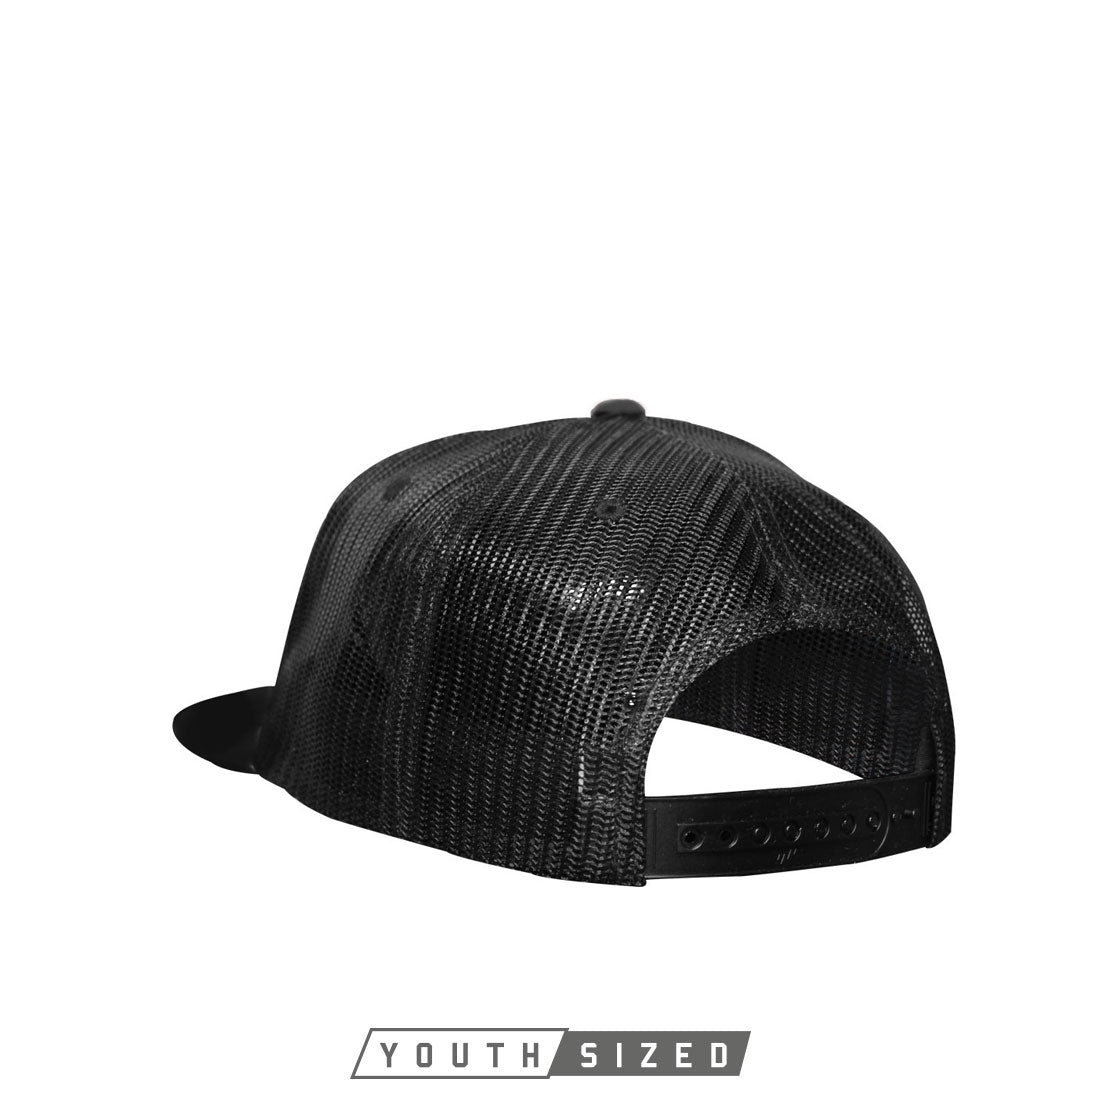 Energy Youth Curved Bill Trucker Hat in Black White Black - Front Snap View